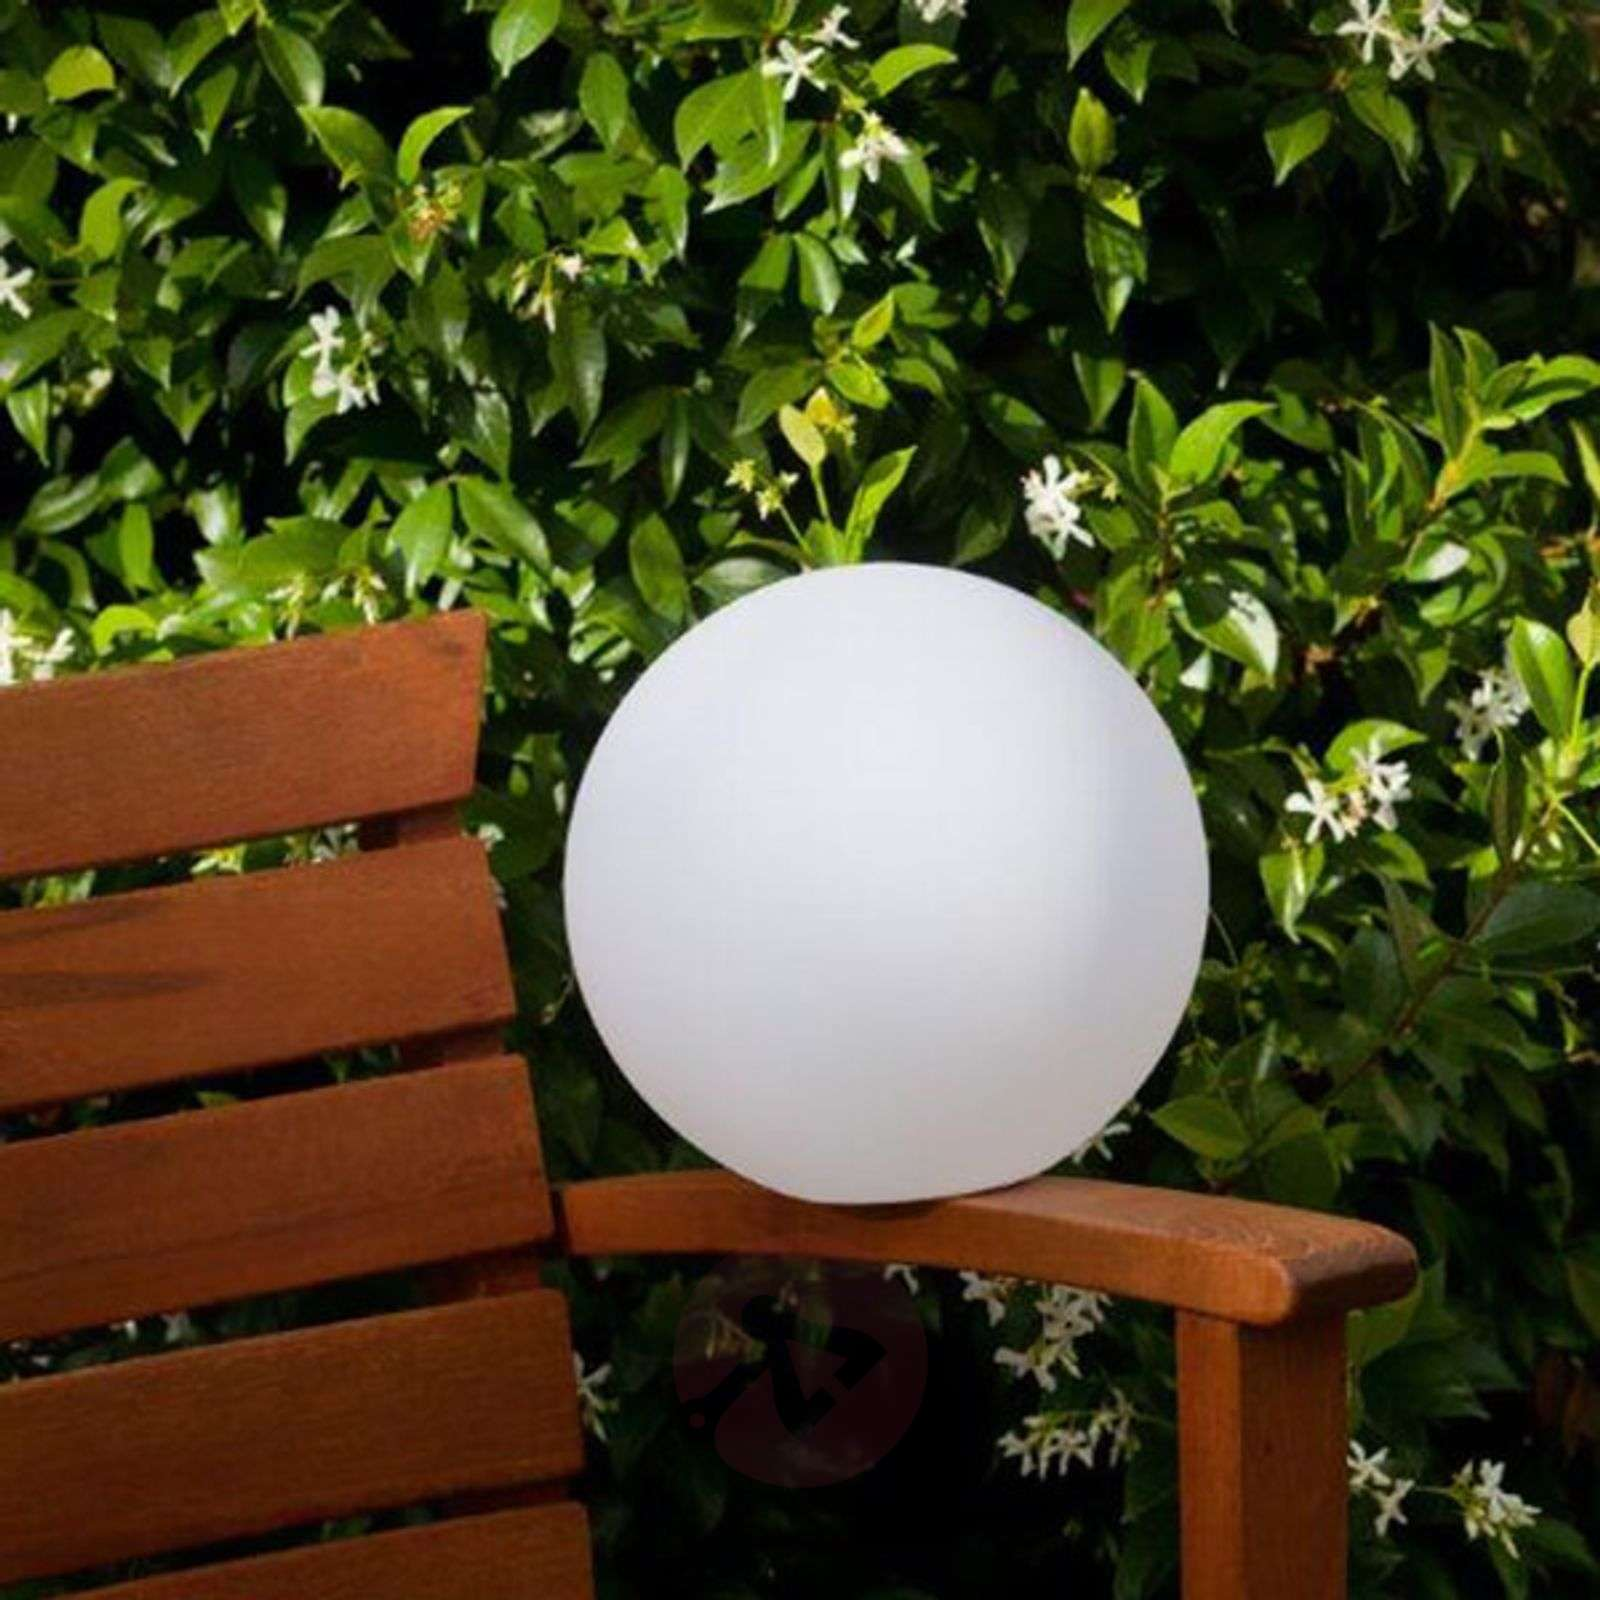 Pearl LED globe light, controllable from a mobile-8590027-01